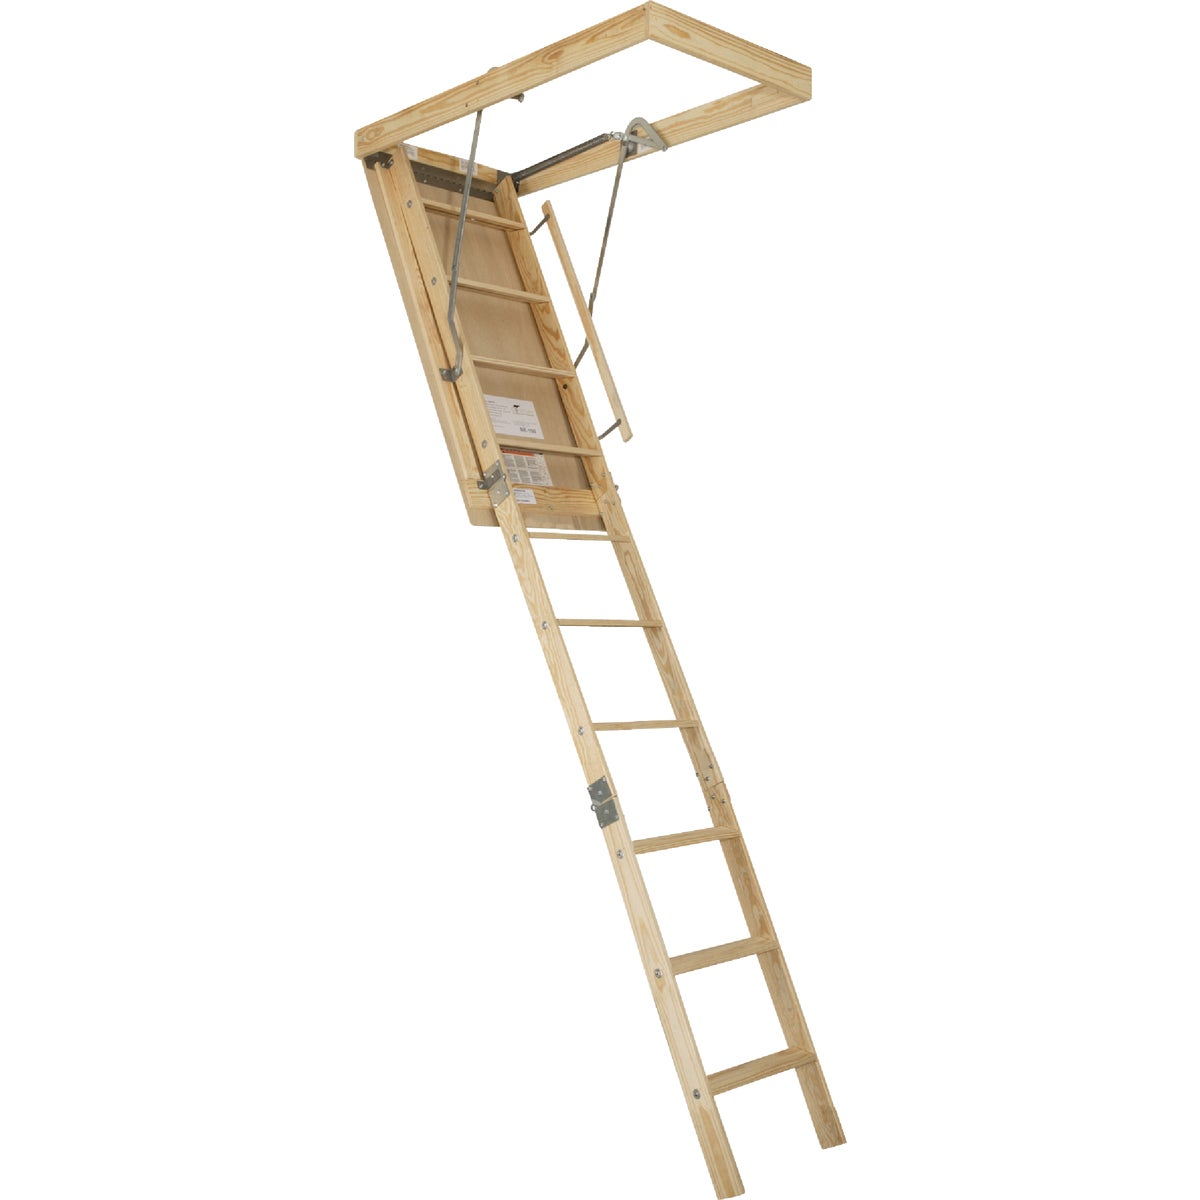 25X105 FIRE ATTIC STAIR